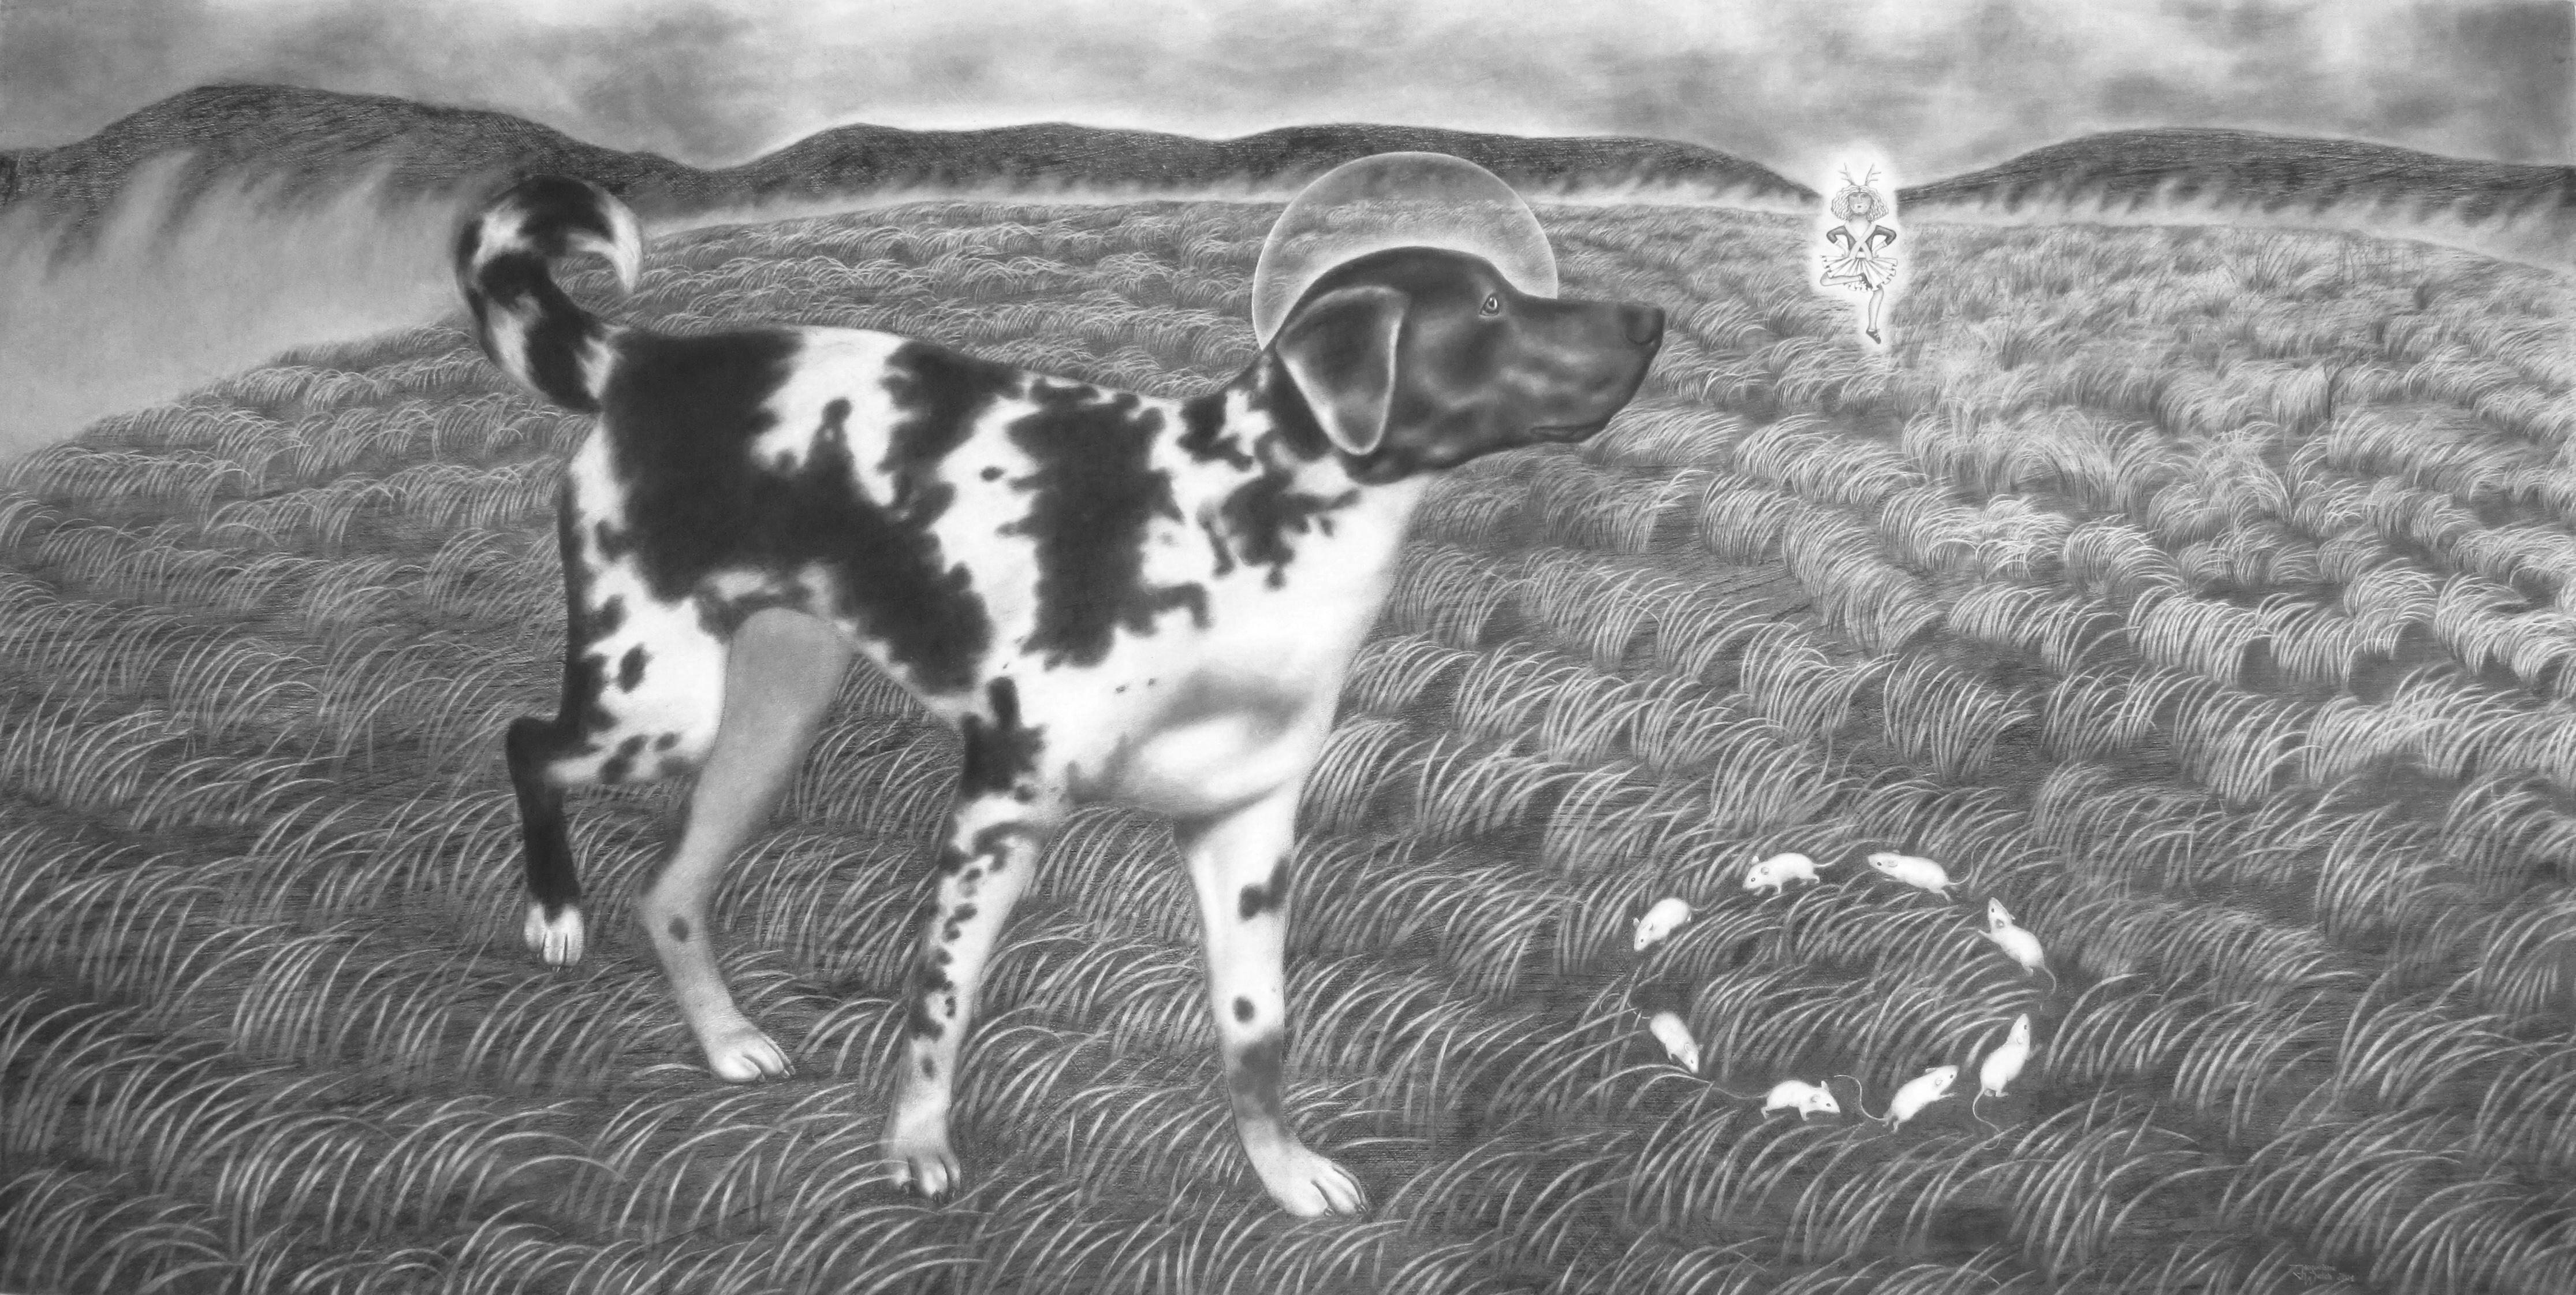 2014-The-Scent-of-Change-Cancer-Detection-New-Work-of-Dogs-series-charcoal-on-gessoed-paper-2014